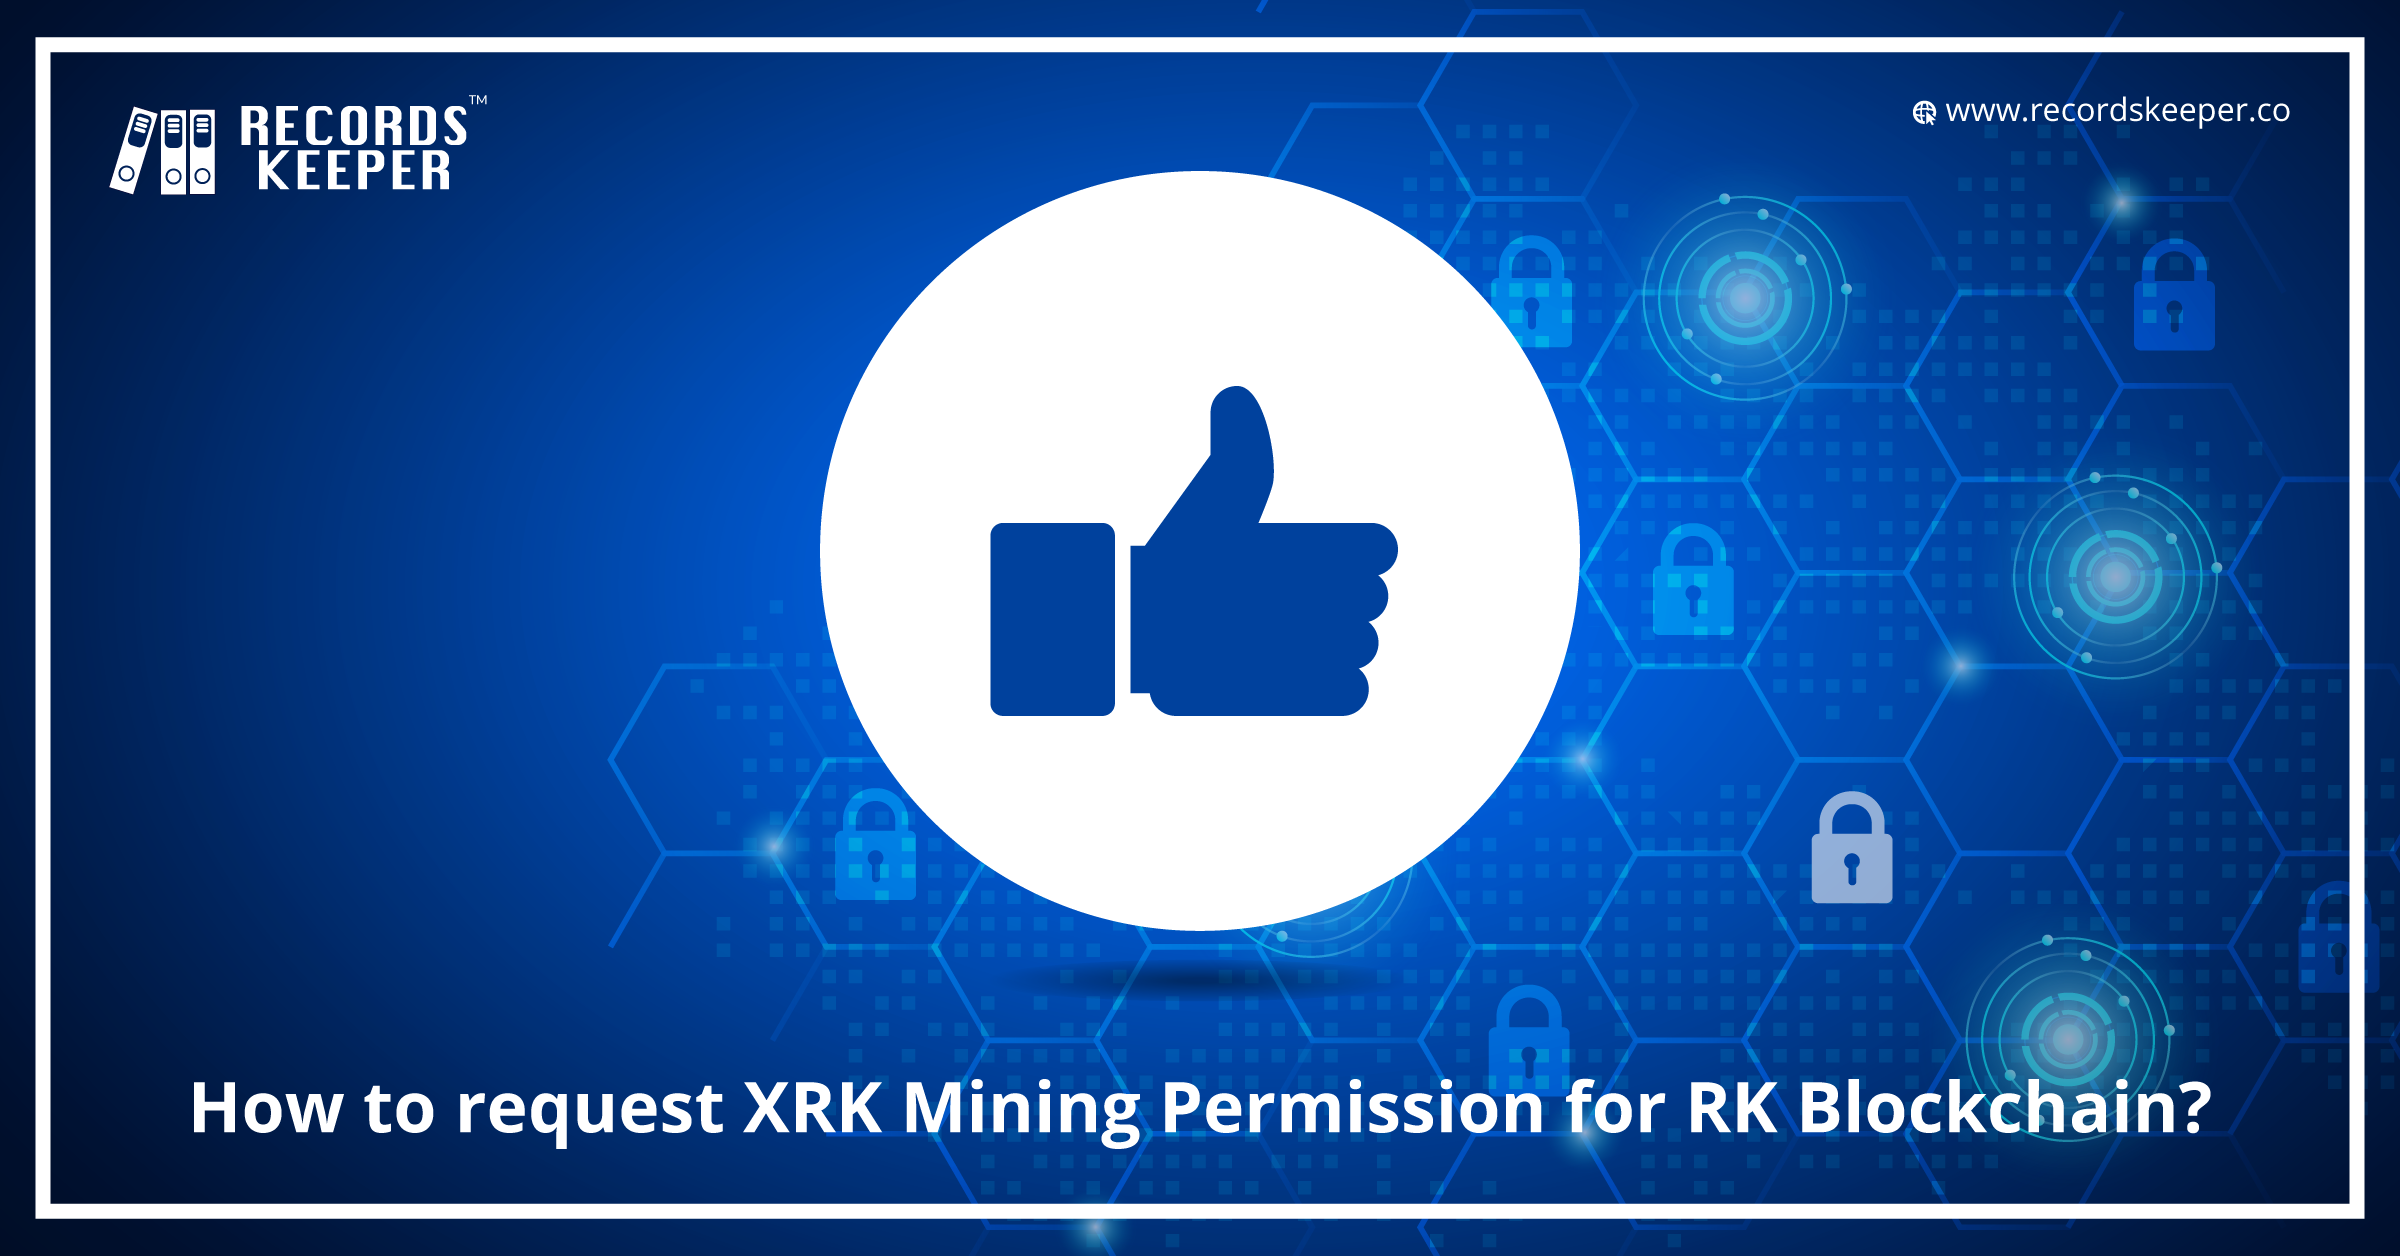 How to request for XRK Mining Permission for RecordsKeeper Blockchain?